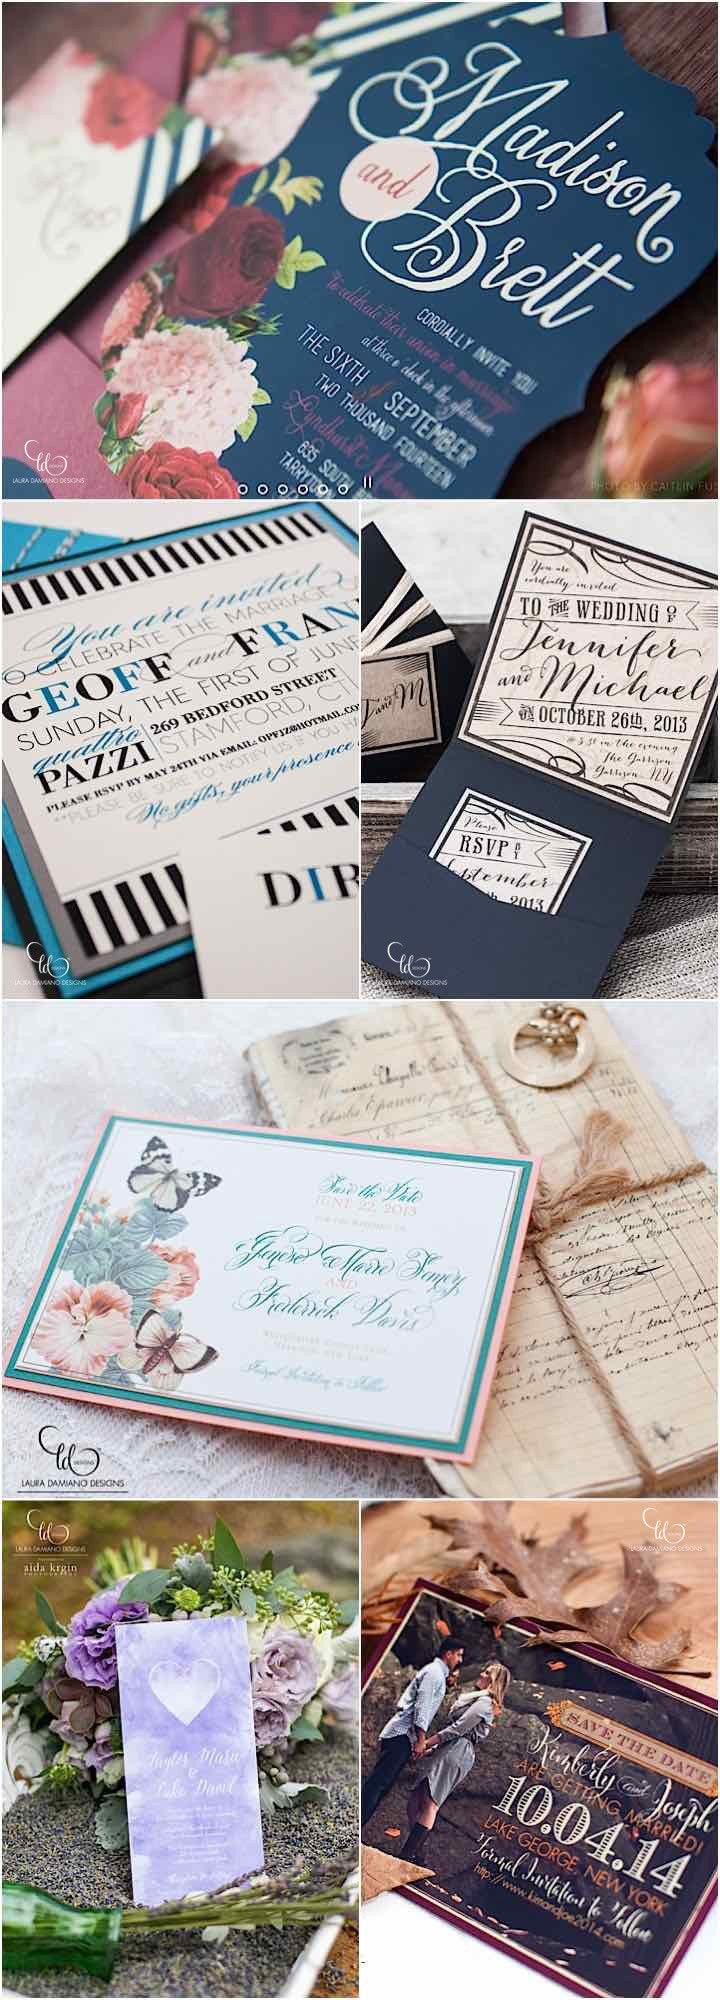 custom wedding invitations nashville%0A Giveaway  Win     Wedding Invitations and RSVP Cards from Laura Damiano  Designs